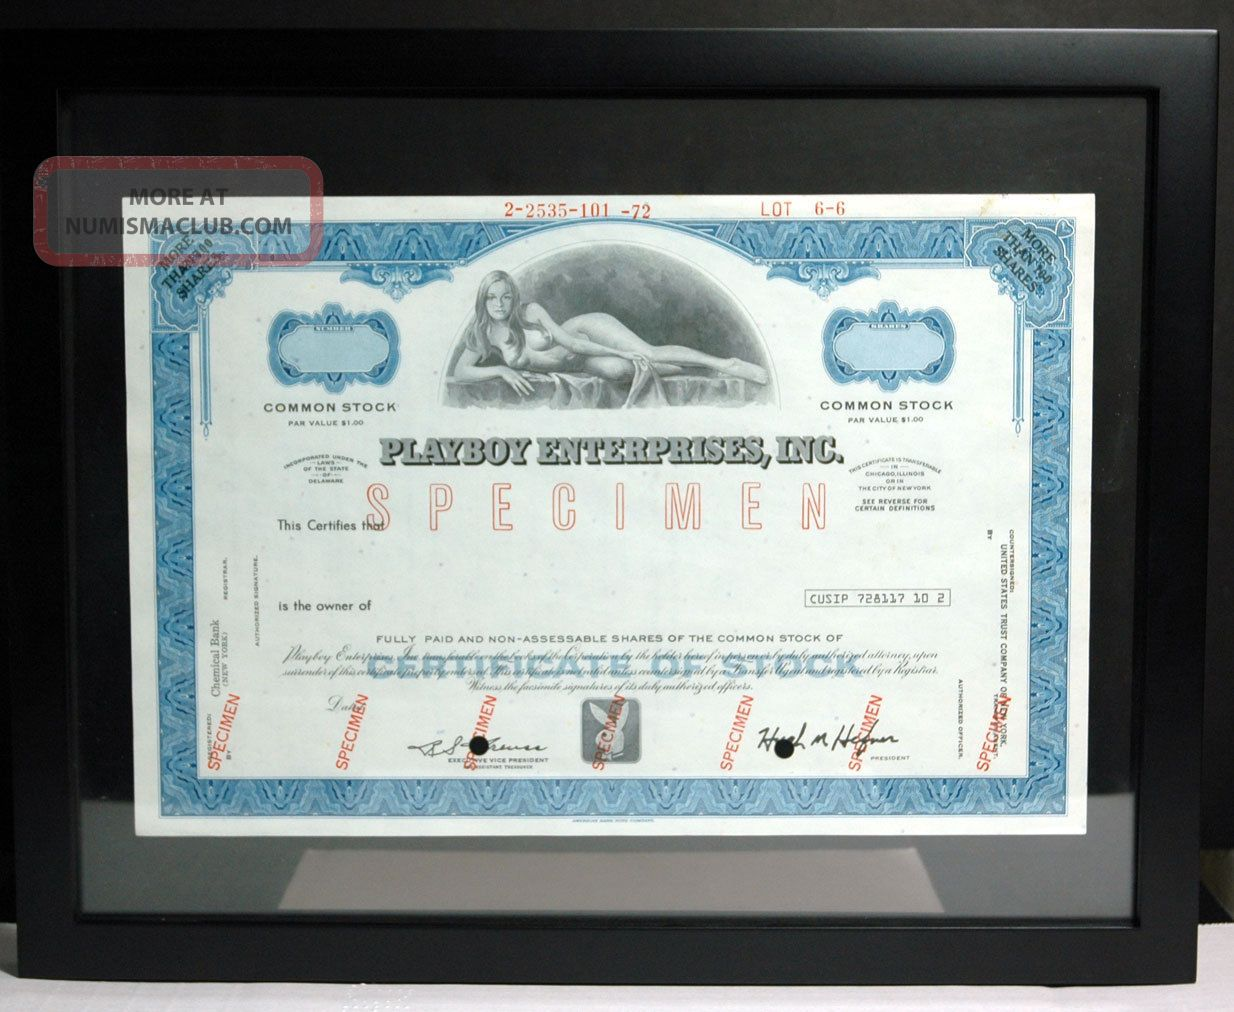 Playboy Stock Specimen Rare Blue Willy Rey Playmate Framed Hefner Signed Unique Stocks & Bonds, Scripophily photo